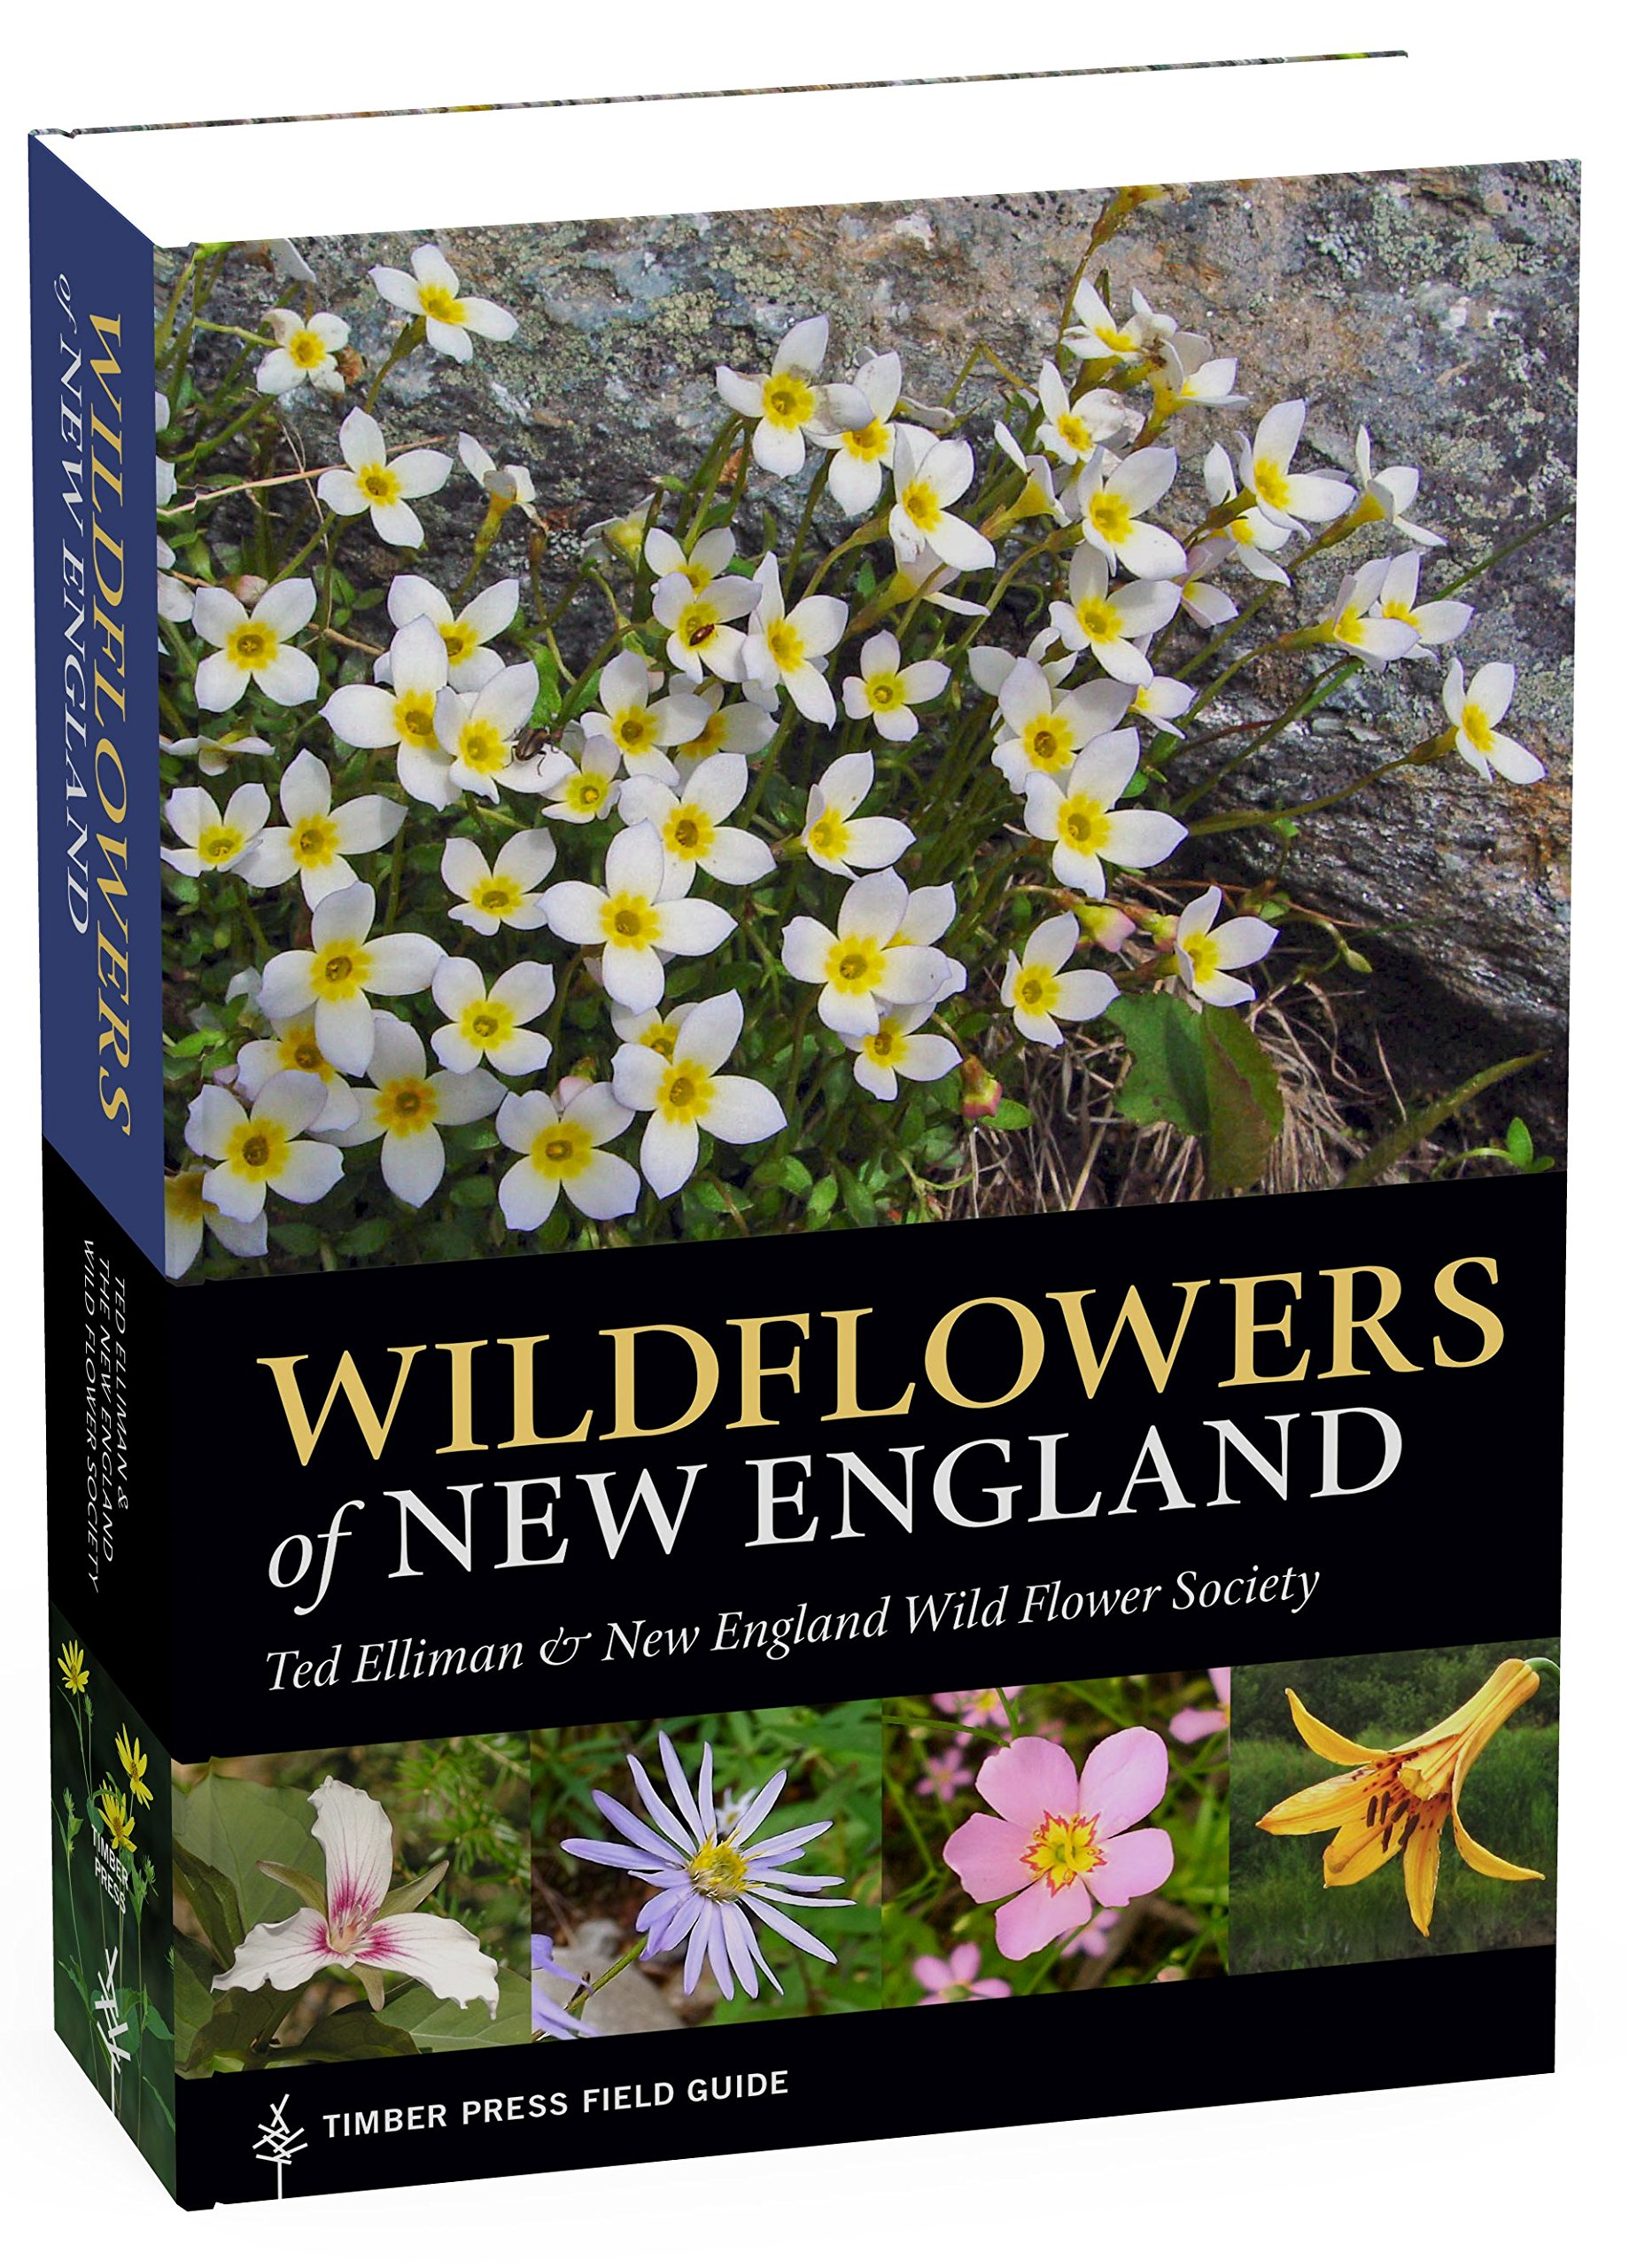 Wildflowers Of New England A Timber Press Field Guide Ted Elliman